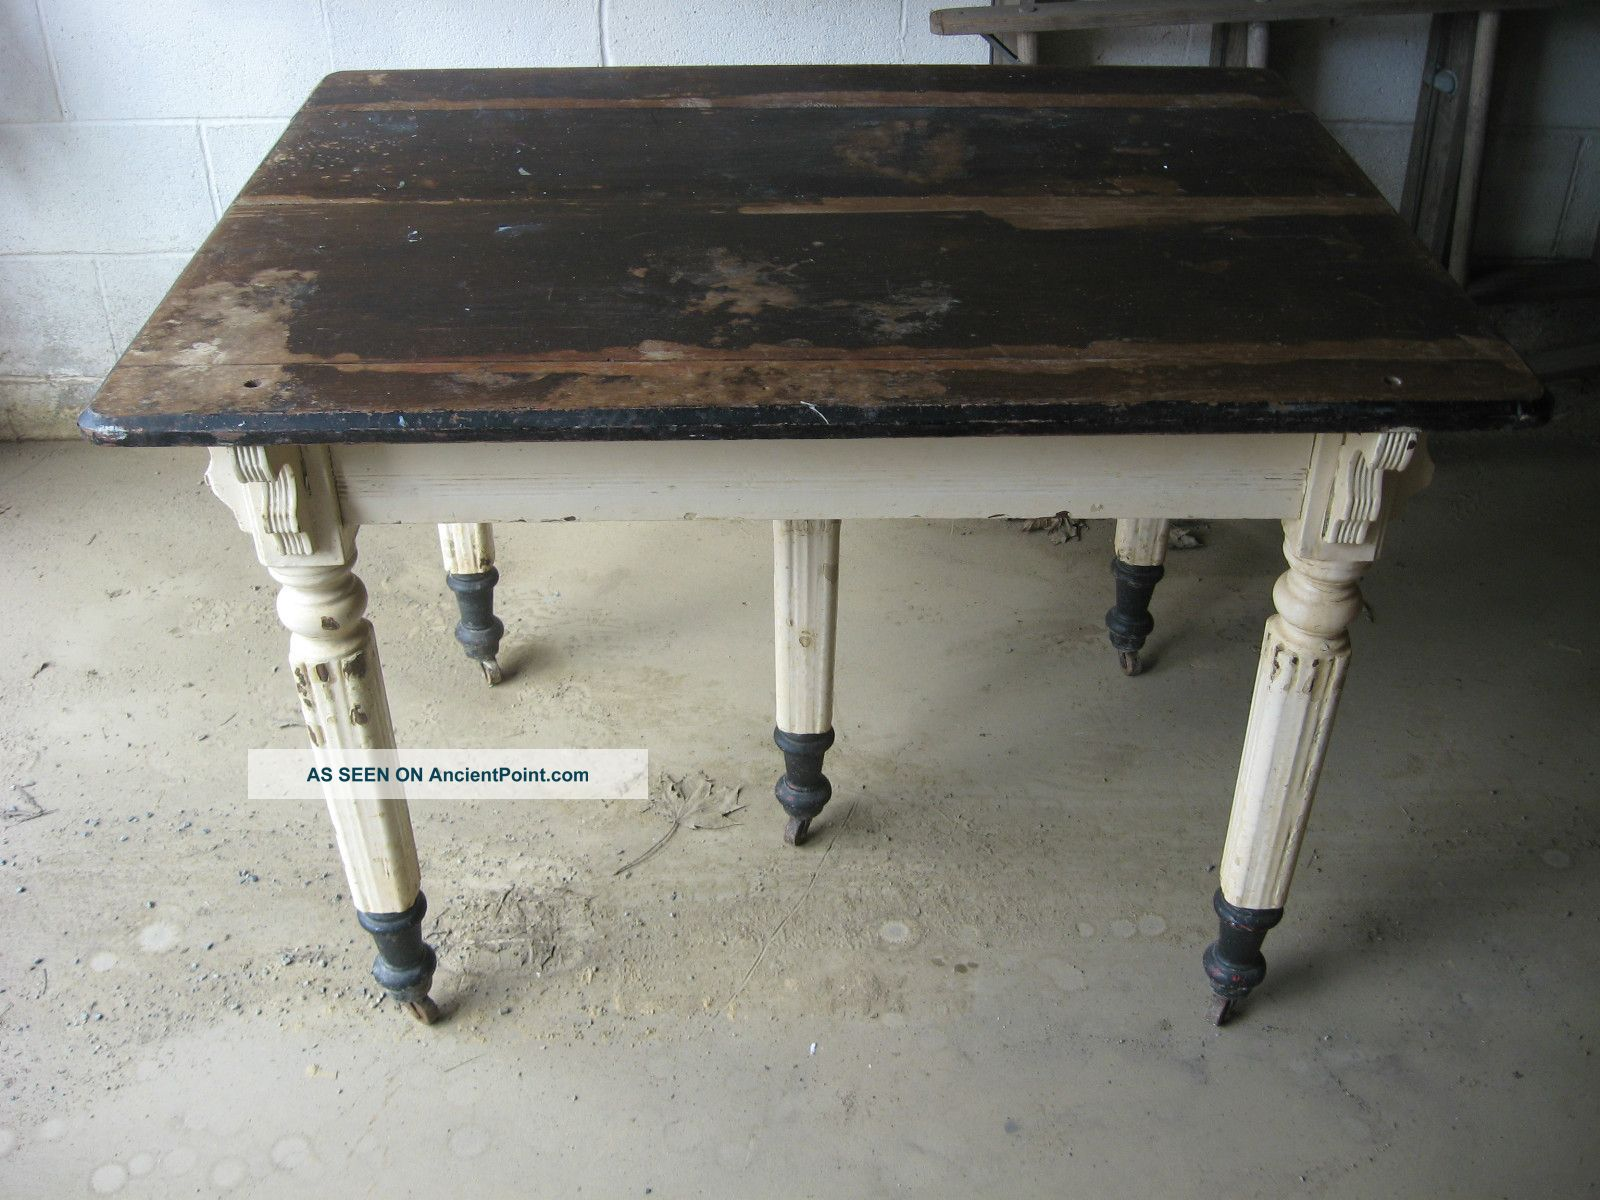 Antique Five 5 Legged Kitchen Table Vintage Farm House Cabin Harrisburg Pa 1900-1950 photo